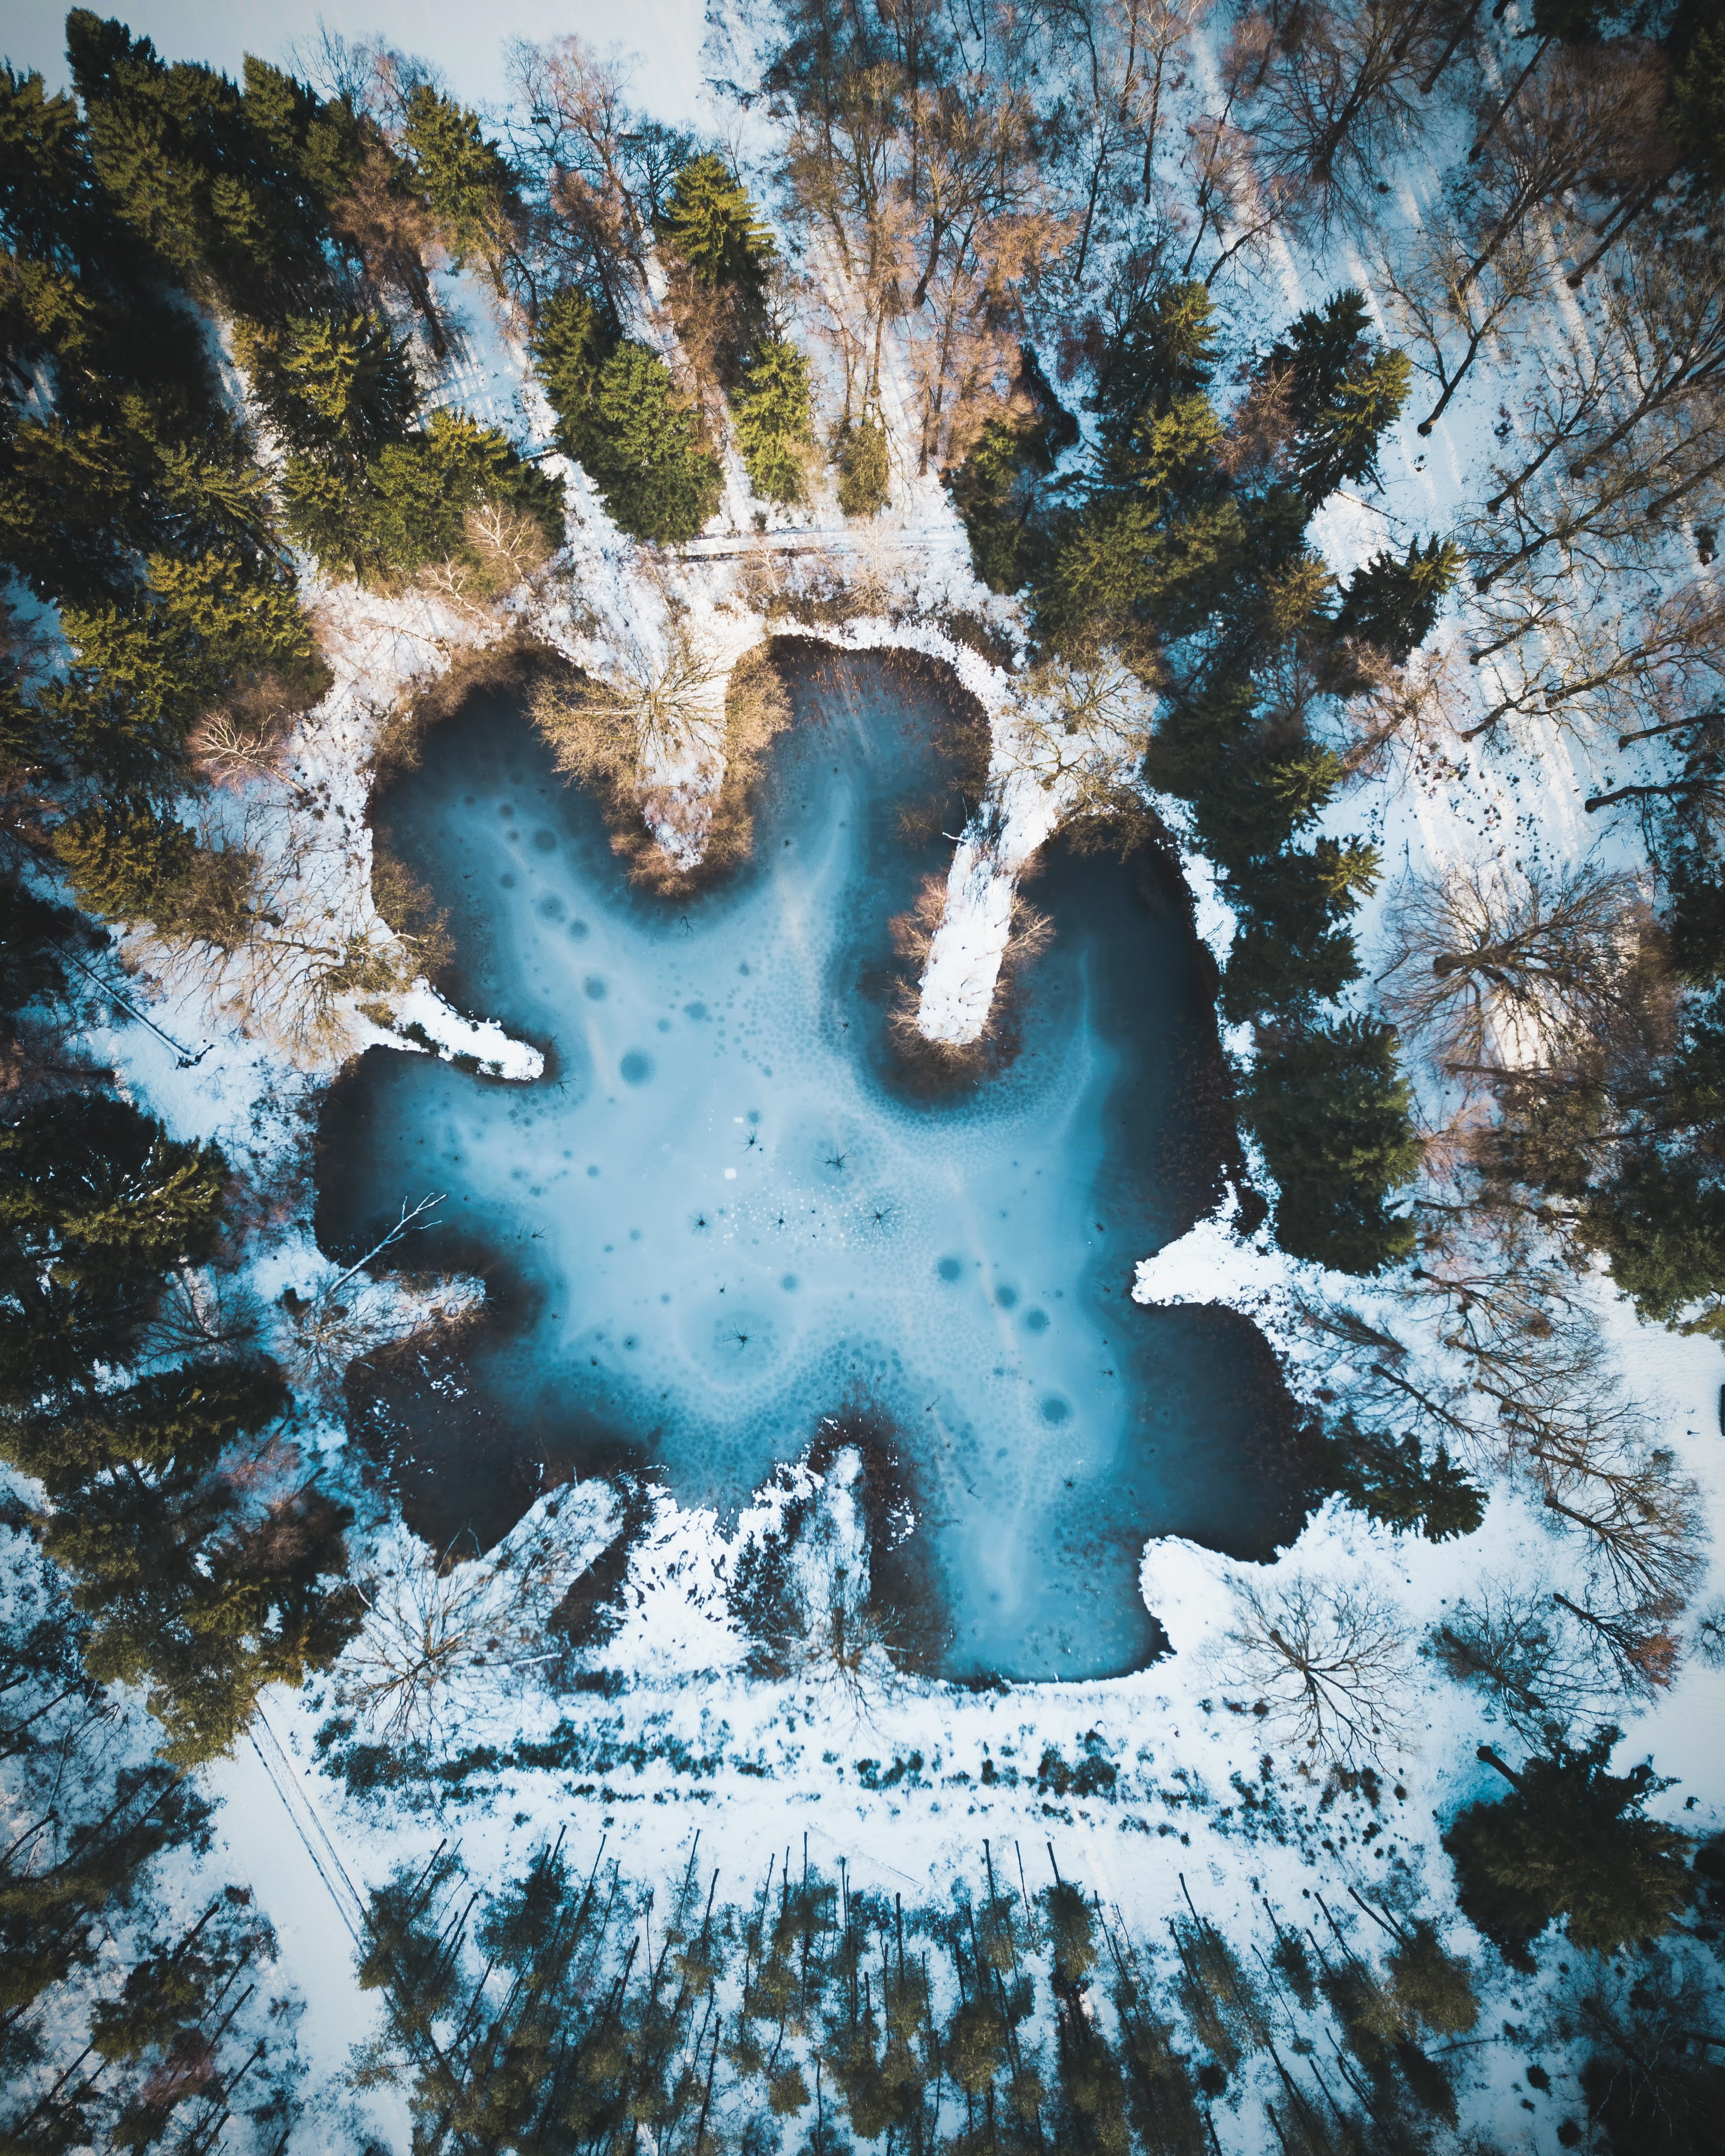 body of water surrounded by snow covered ground with green trees